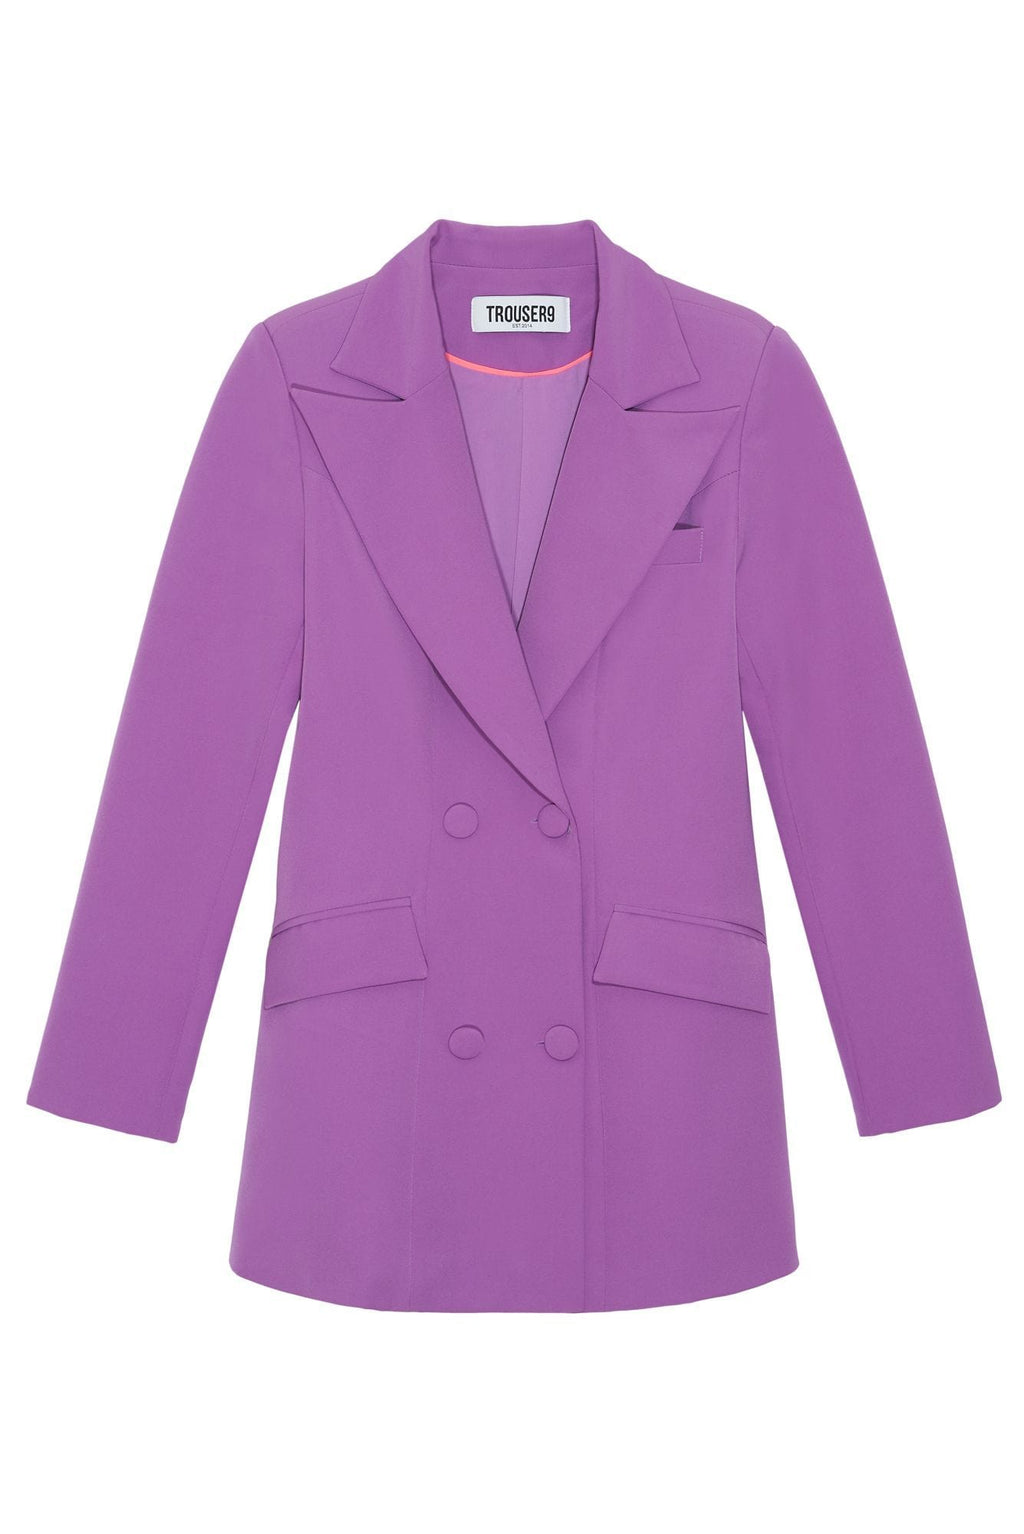 women's Purple double breasted blazer